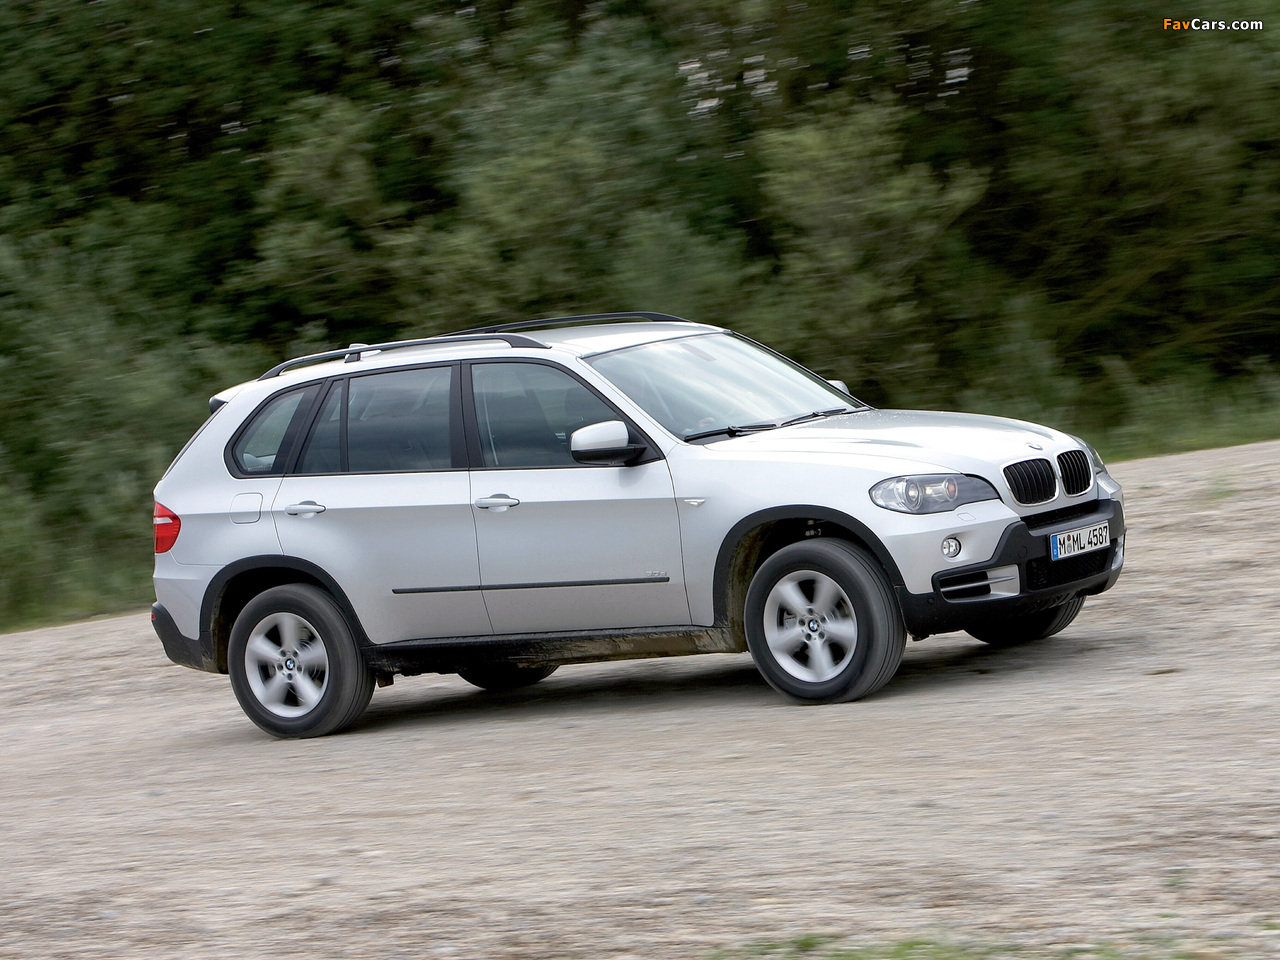 Pictures of BMW X5 3.0d (E70) 2007-10 (1280x960)